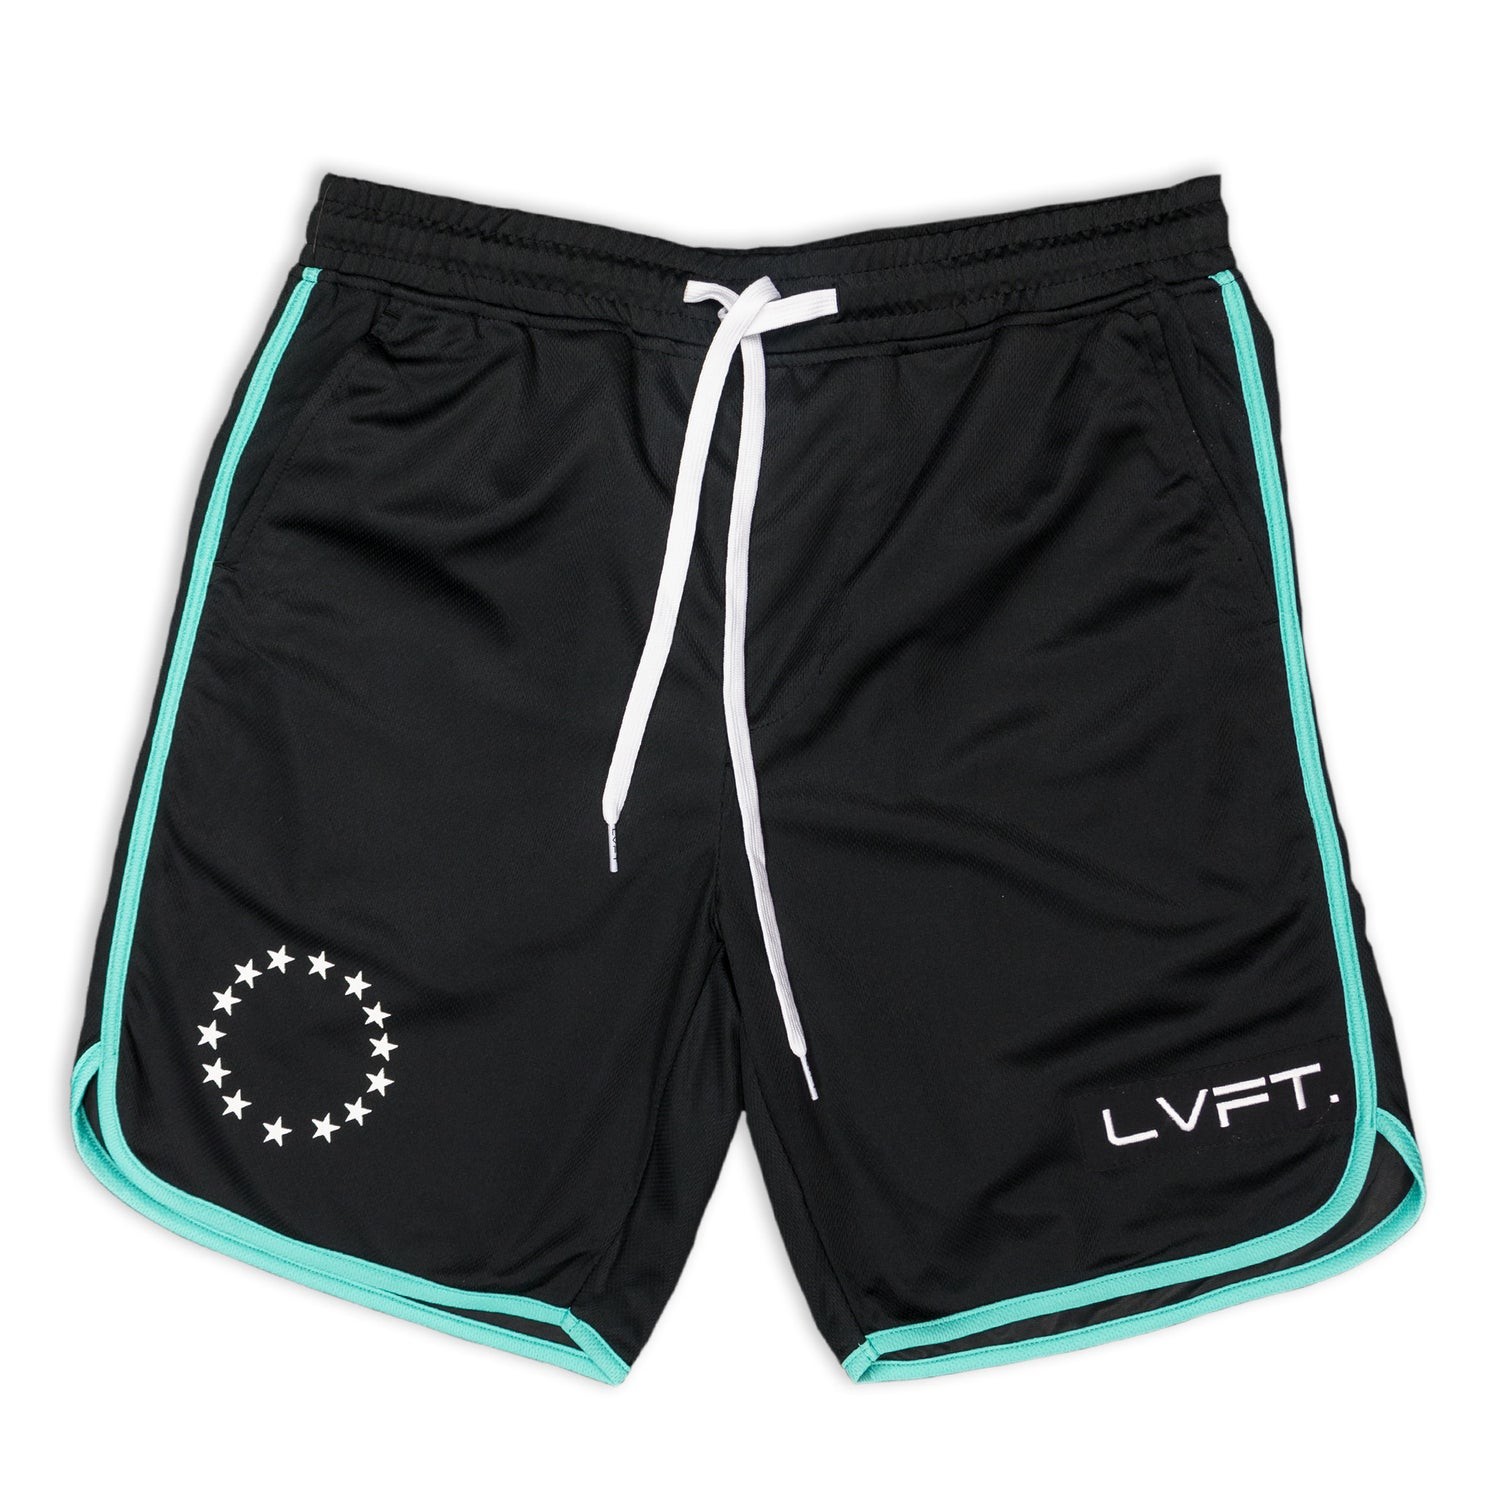 All Star Active Shorts - Black/Teal